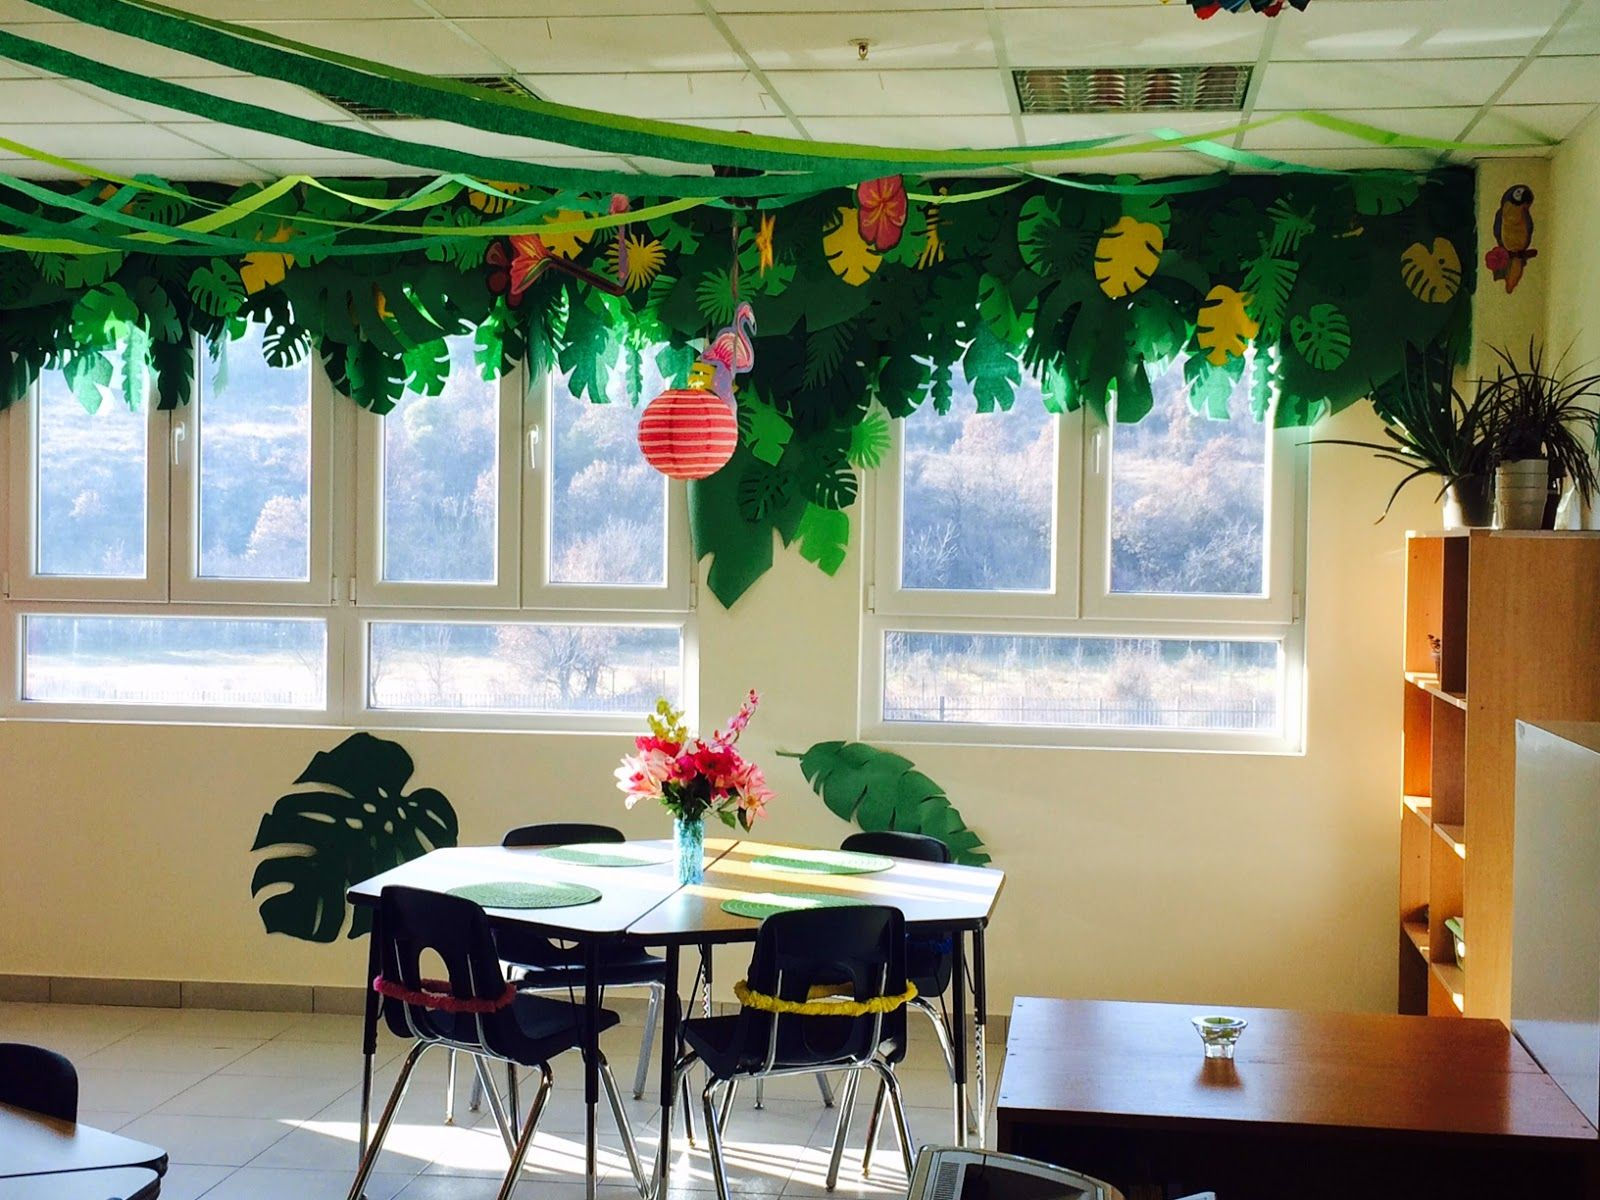 Zebra Classroom Ideas ~ The charming classroom island jungle theme …